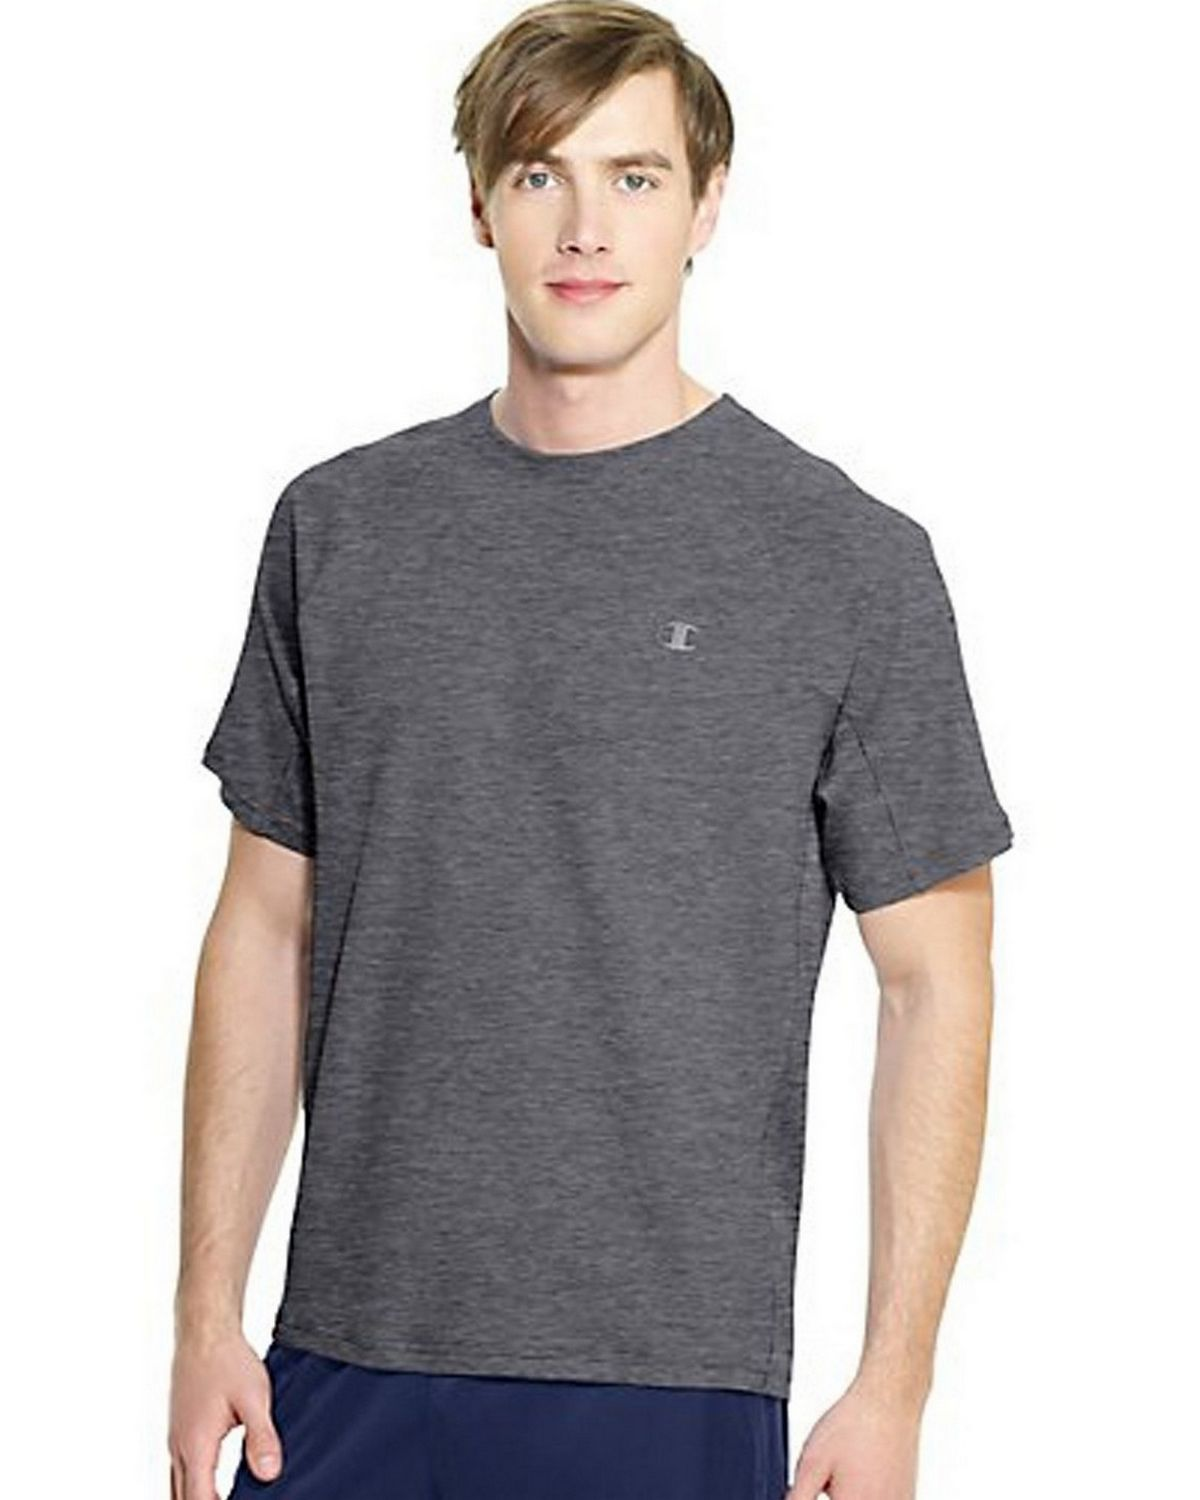 Hanes T6608 Champion Vapor Power Train Short Sleeve Colorblock Mens Tee, Oxford Grey & Granite Heather Size Large 00078715064563